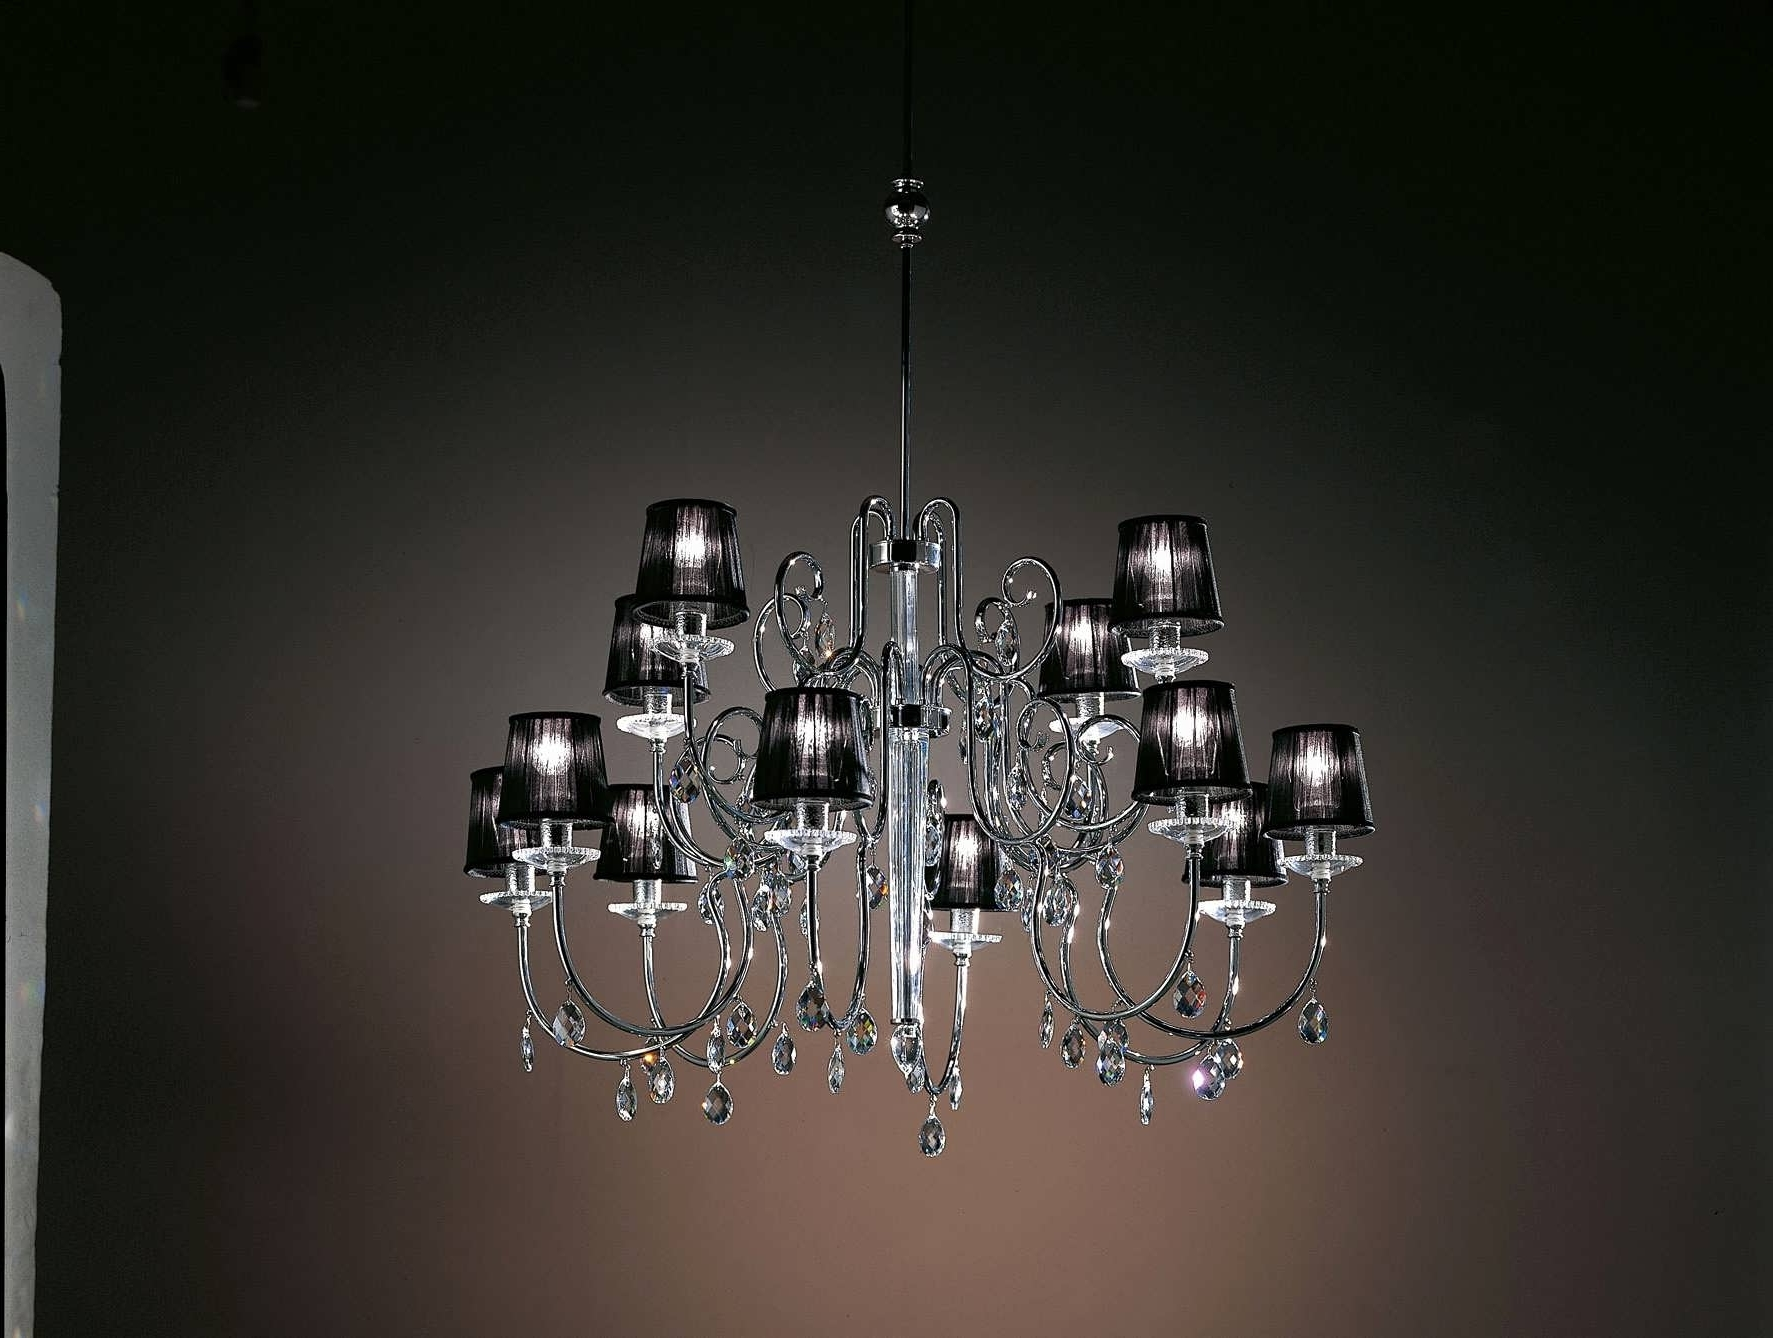 Light : Modern Chandelier Lighting Small Black Keywordrelevance With Regard To Well Known Modern Chandelier Lighting (View 11 of 20)